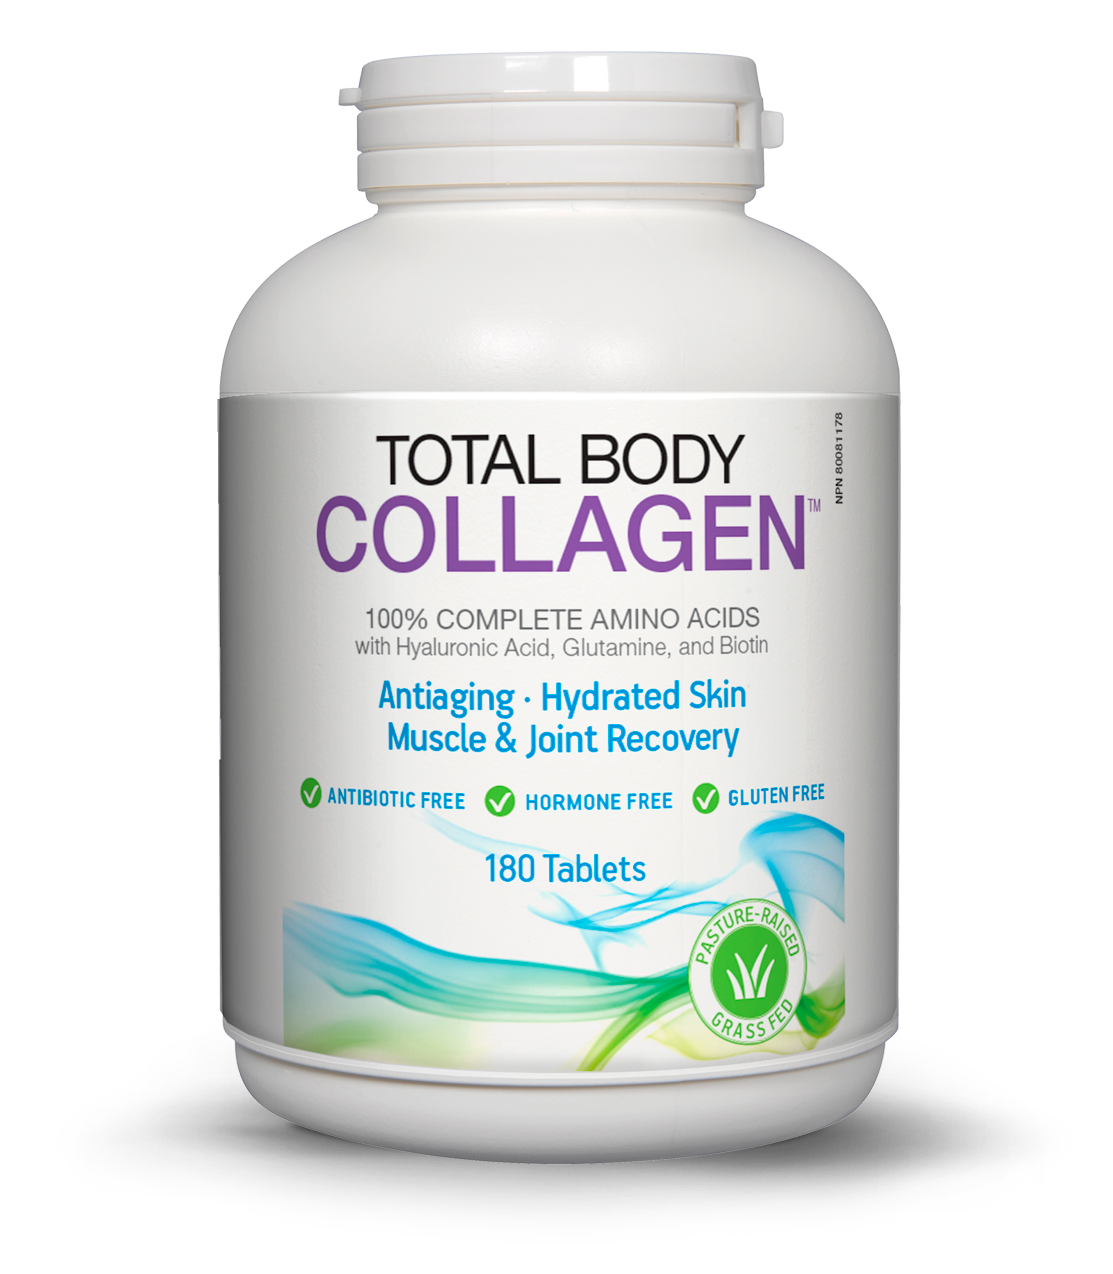 Total Body Collagen Tablets